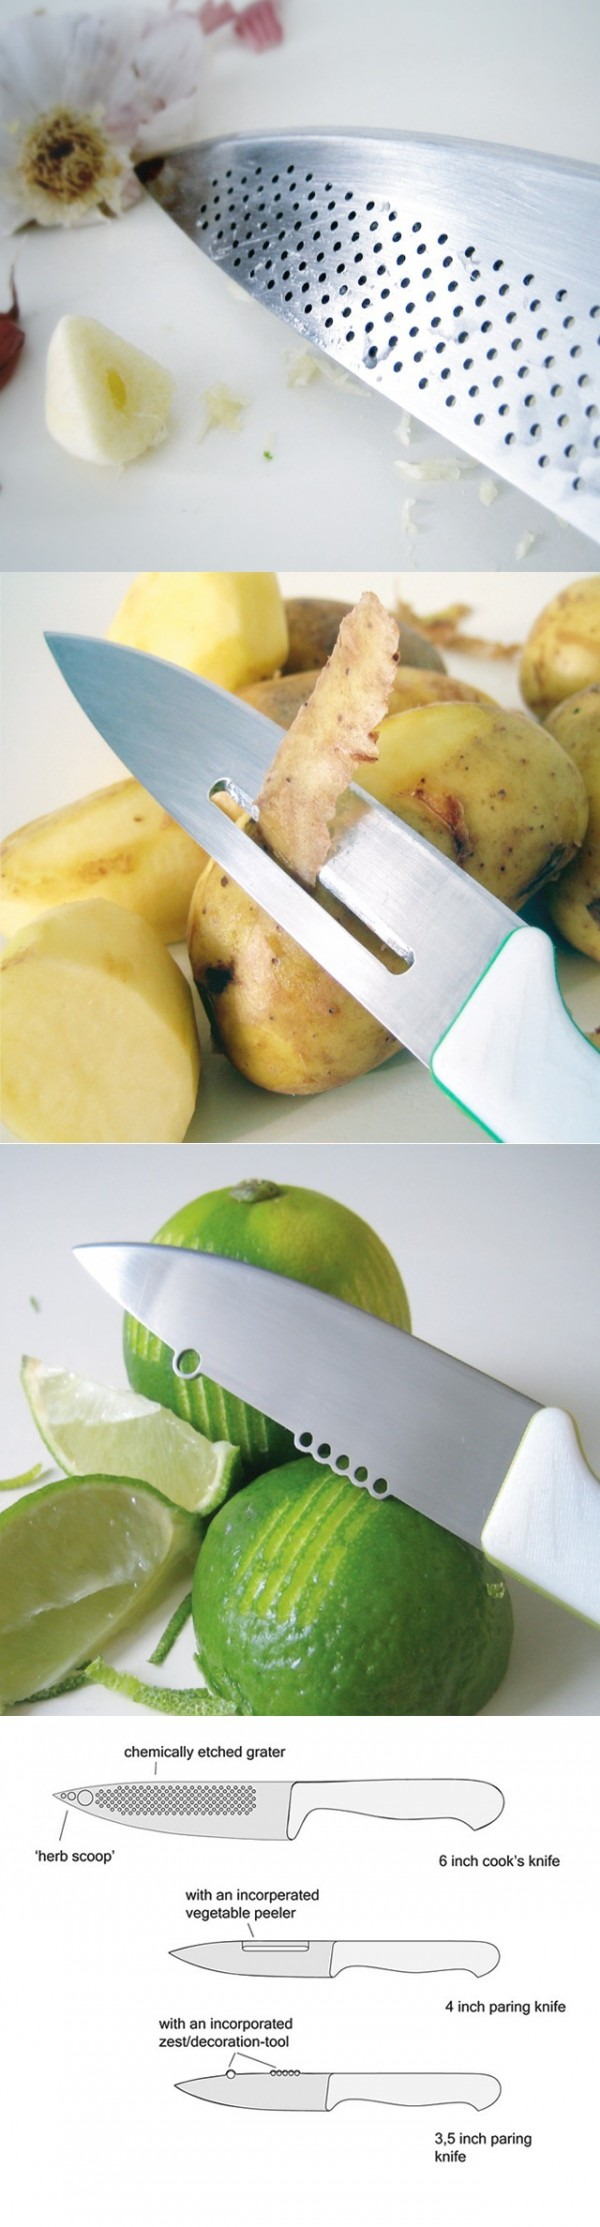 The idea behind these amazing concept knives is that a great knife should be able to do more than slice and chop.